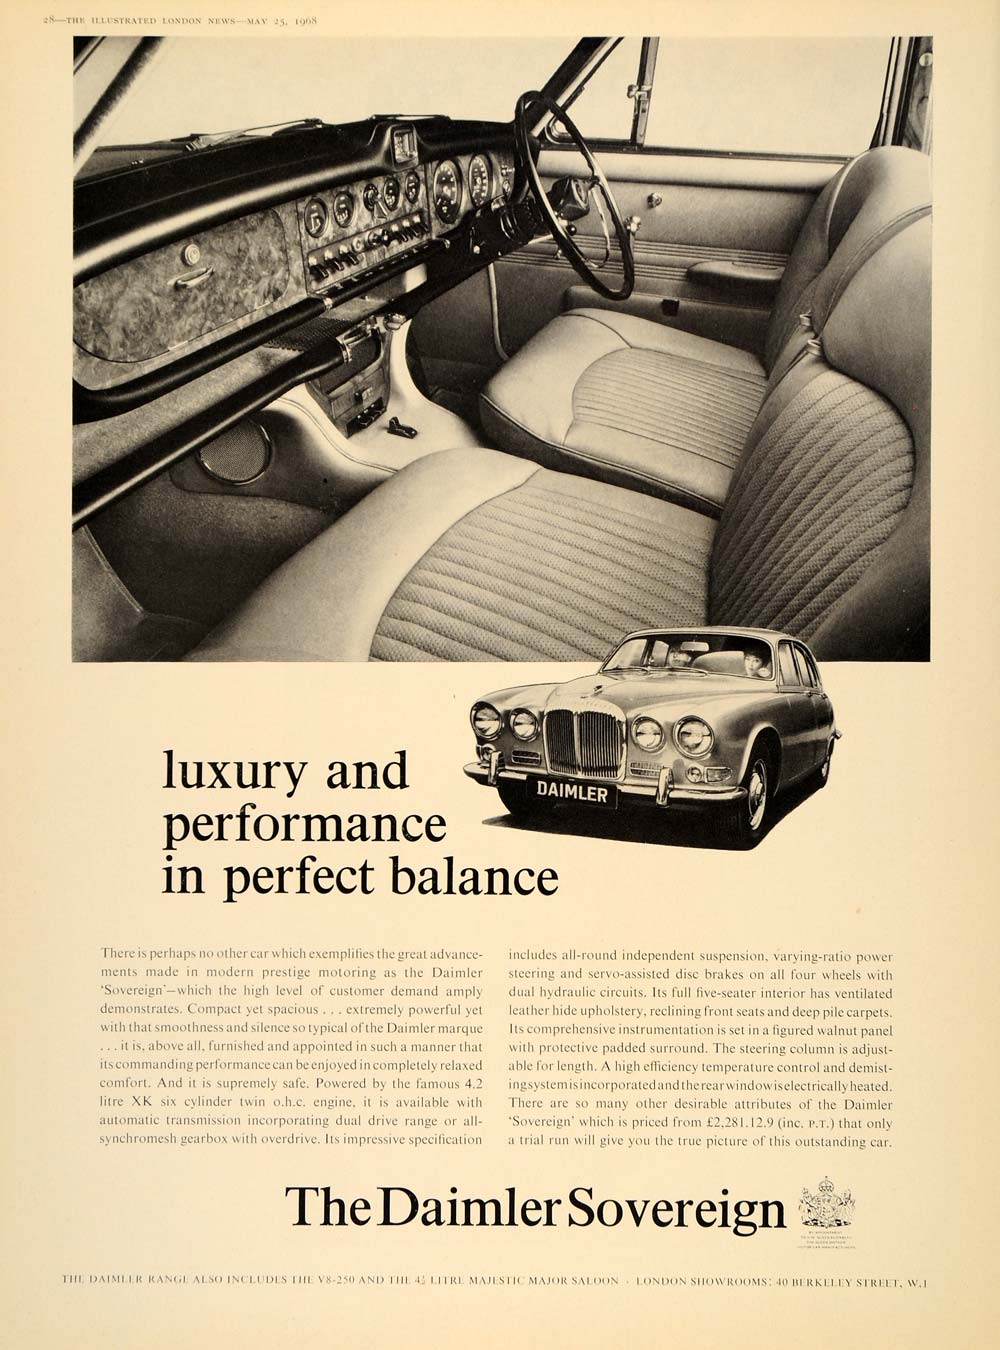 1968 Ad Daimler 4.2 Litre Sovereign Automobile Interior - ORIGINAL LN1